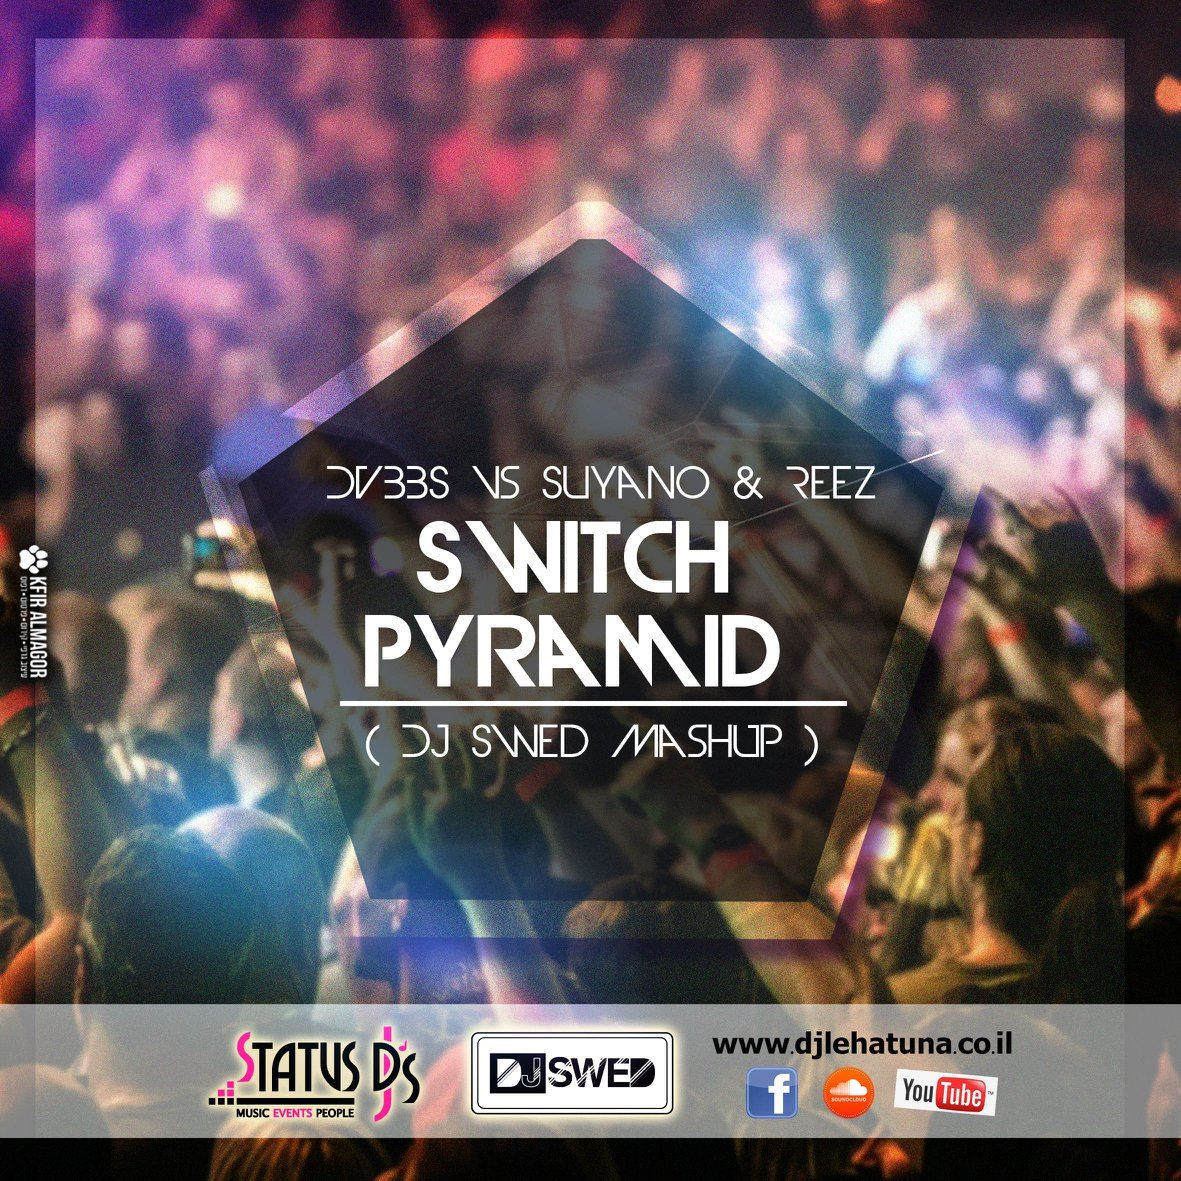 DVBBS vs Suyano & Reez - Switch Pyramid (DJ Swed Mash Up)